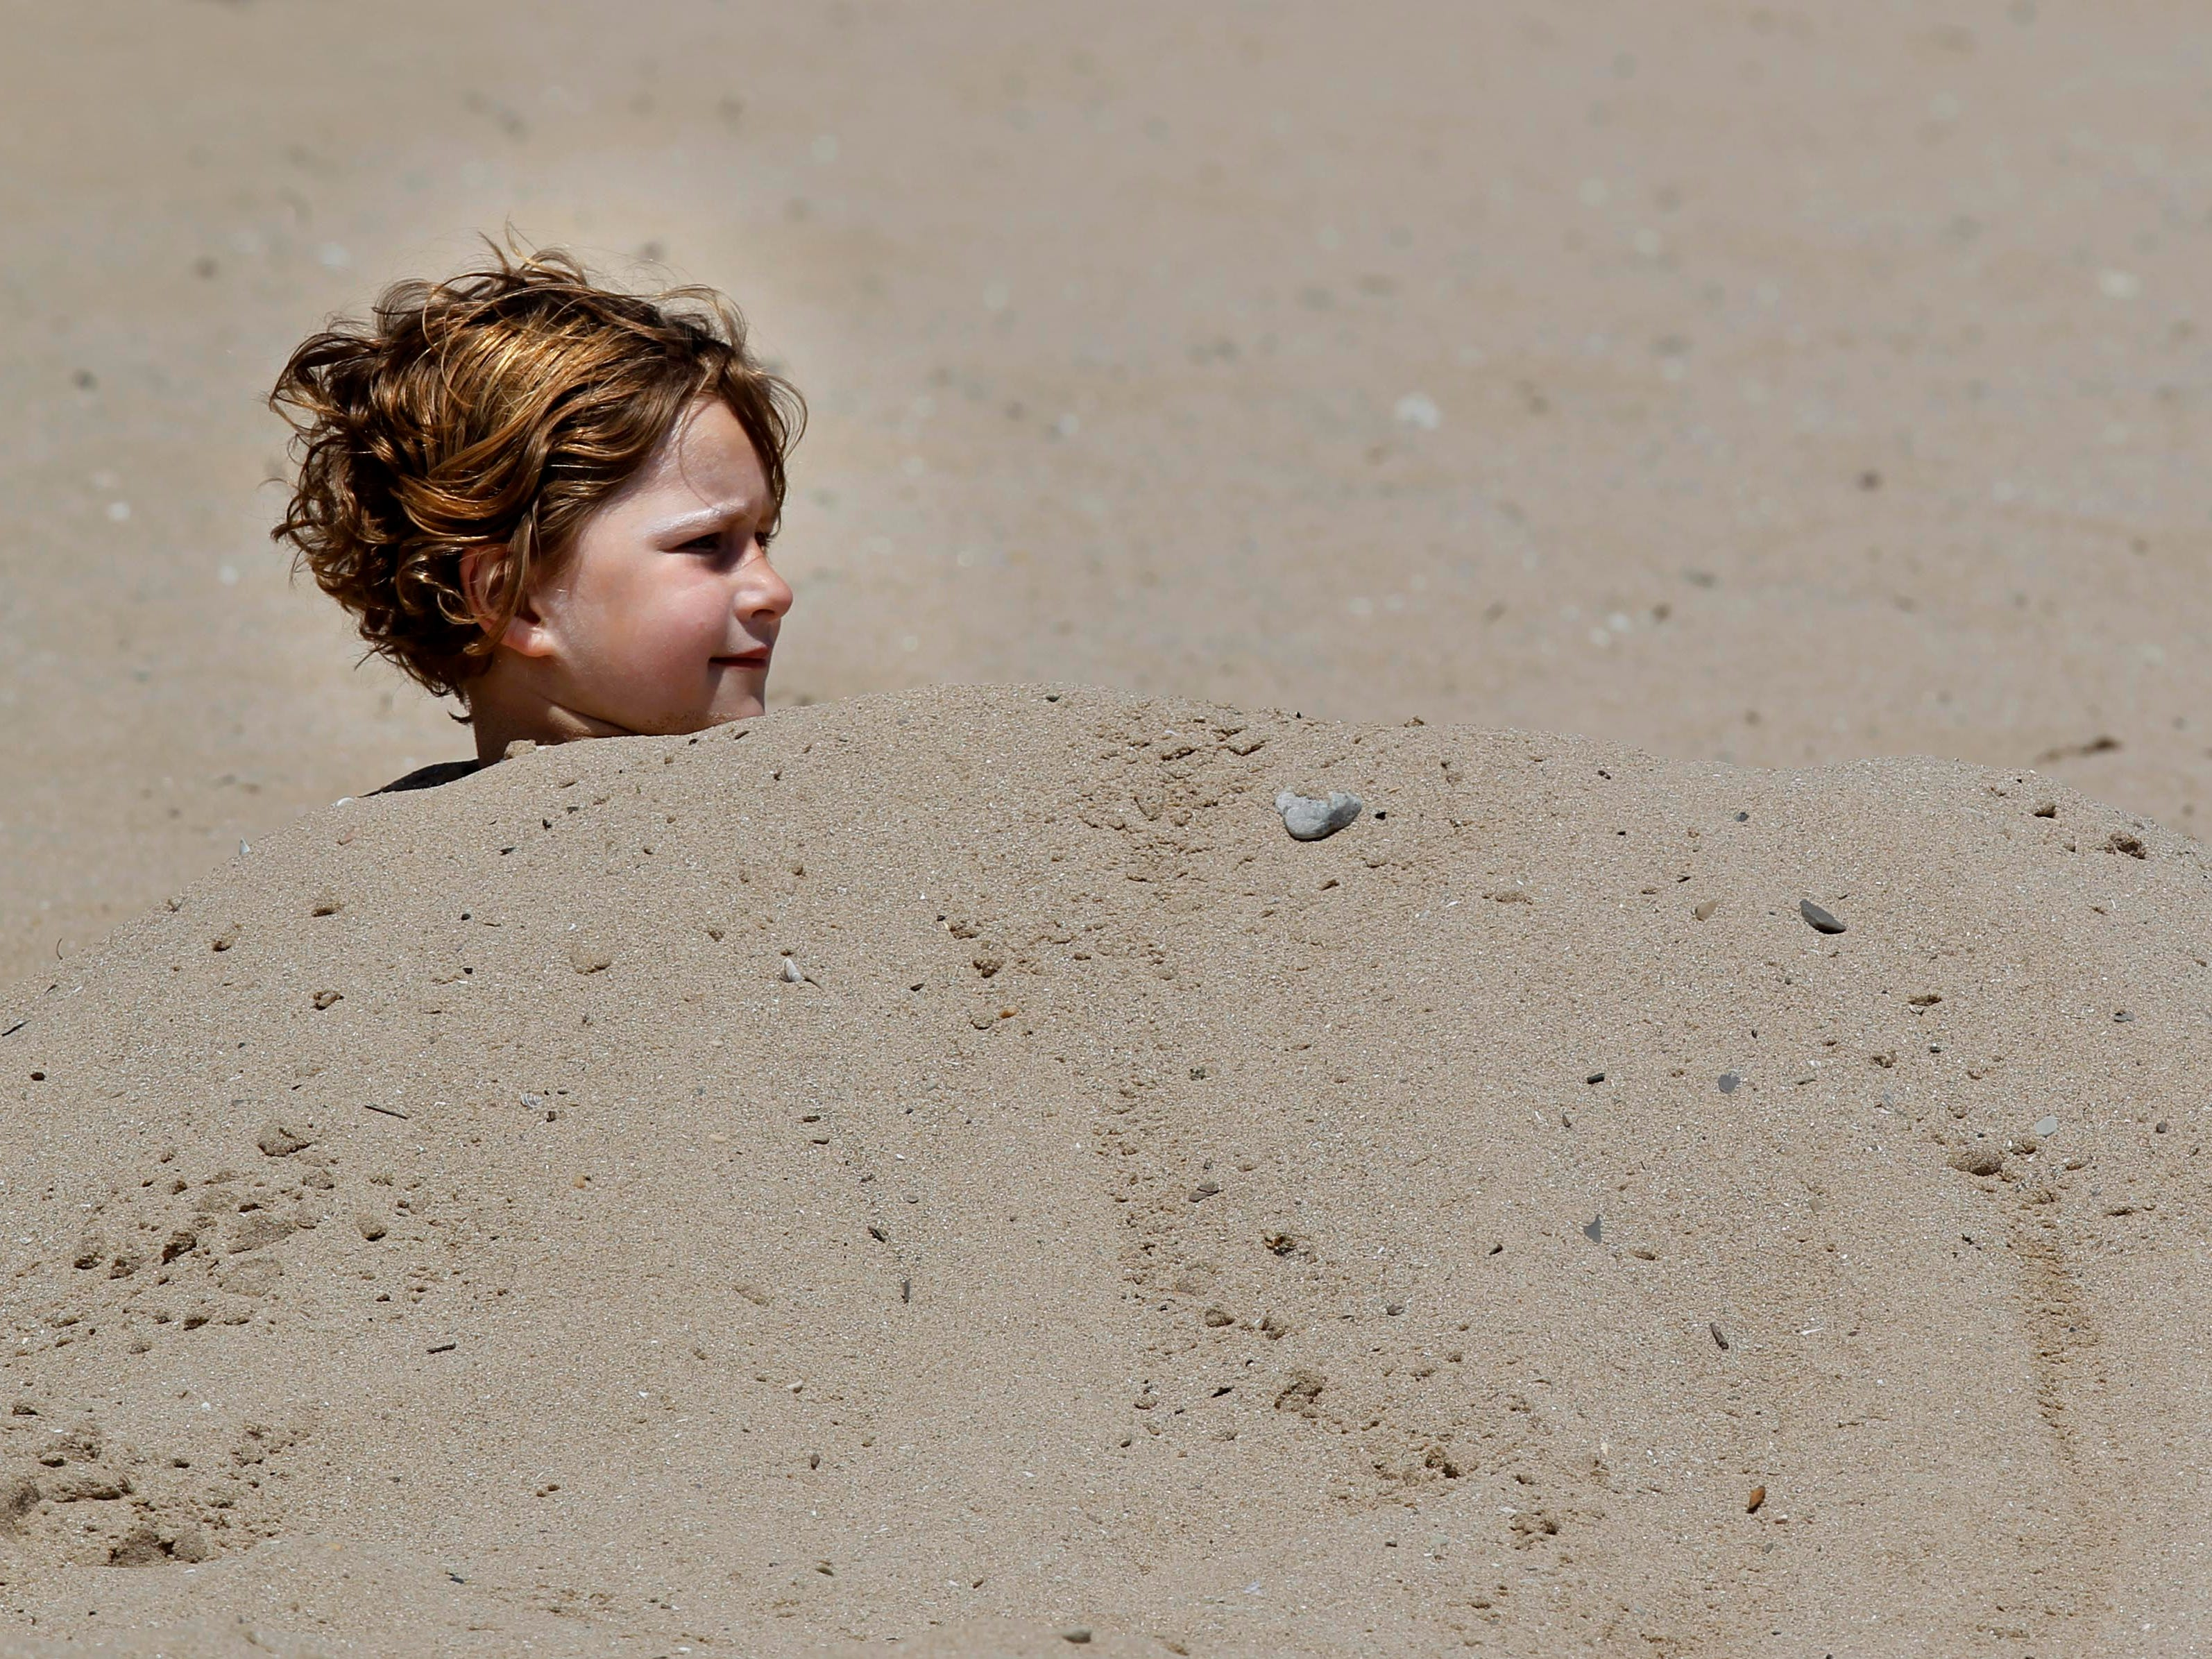 Julia Edler stays cool at at Bradford Beach after being covered in sand by her father, Darin Edler, and sister Alexis.